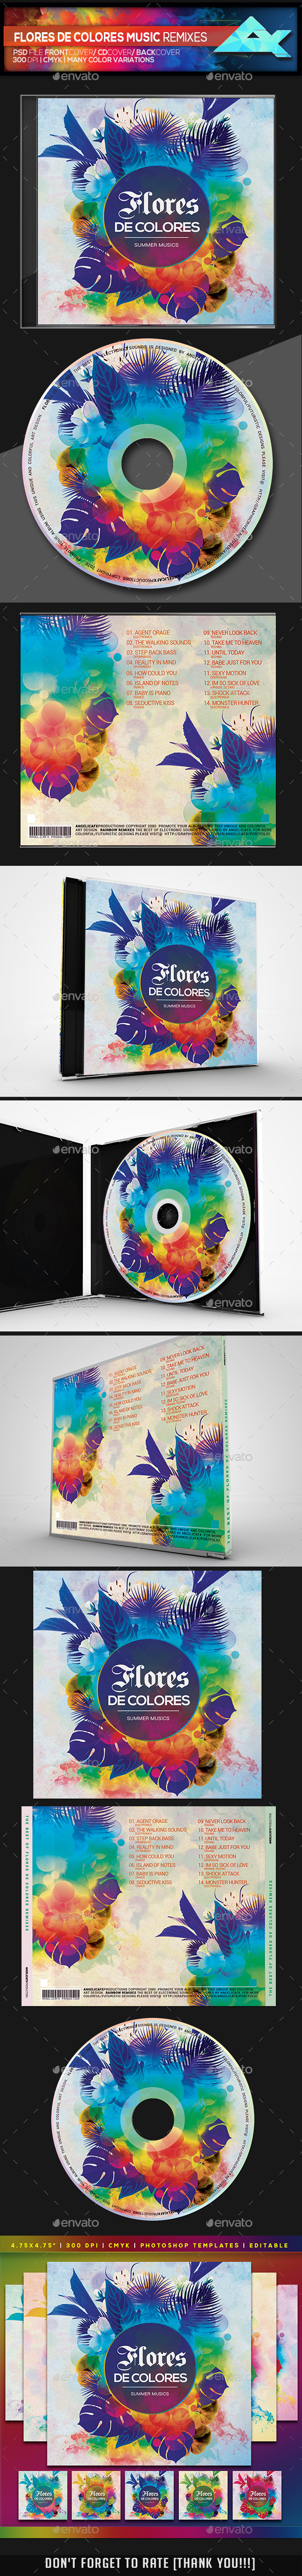 Flores De Colores Summer Musics CD/DVD Photoshop Template - Flyers Print Templates